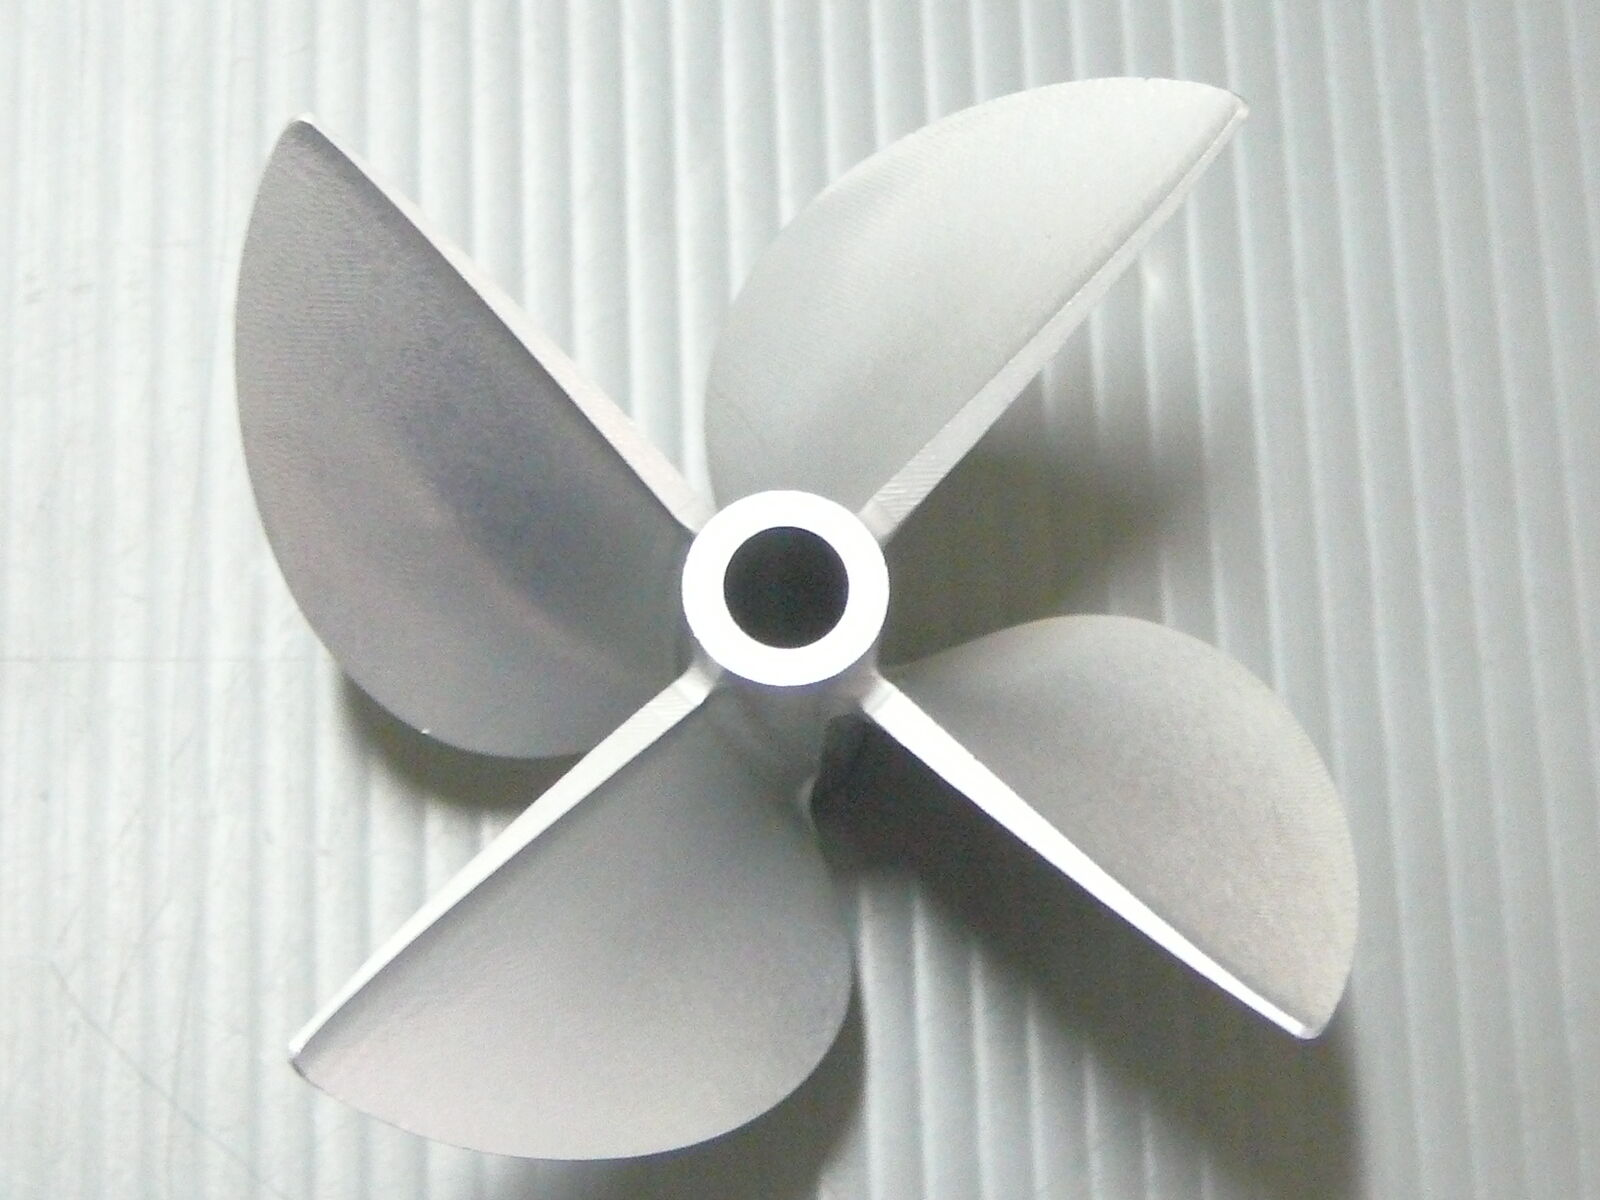 Modellbau 4 Leaves Dia 67mm P1 7 Rc Boat Aluminum Alloy Propeller With 1 4